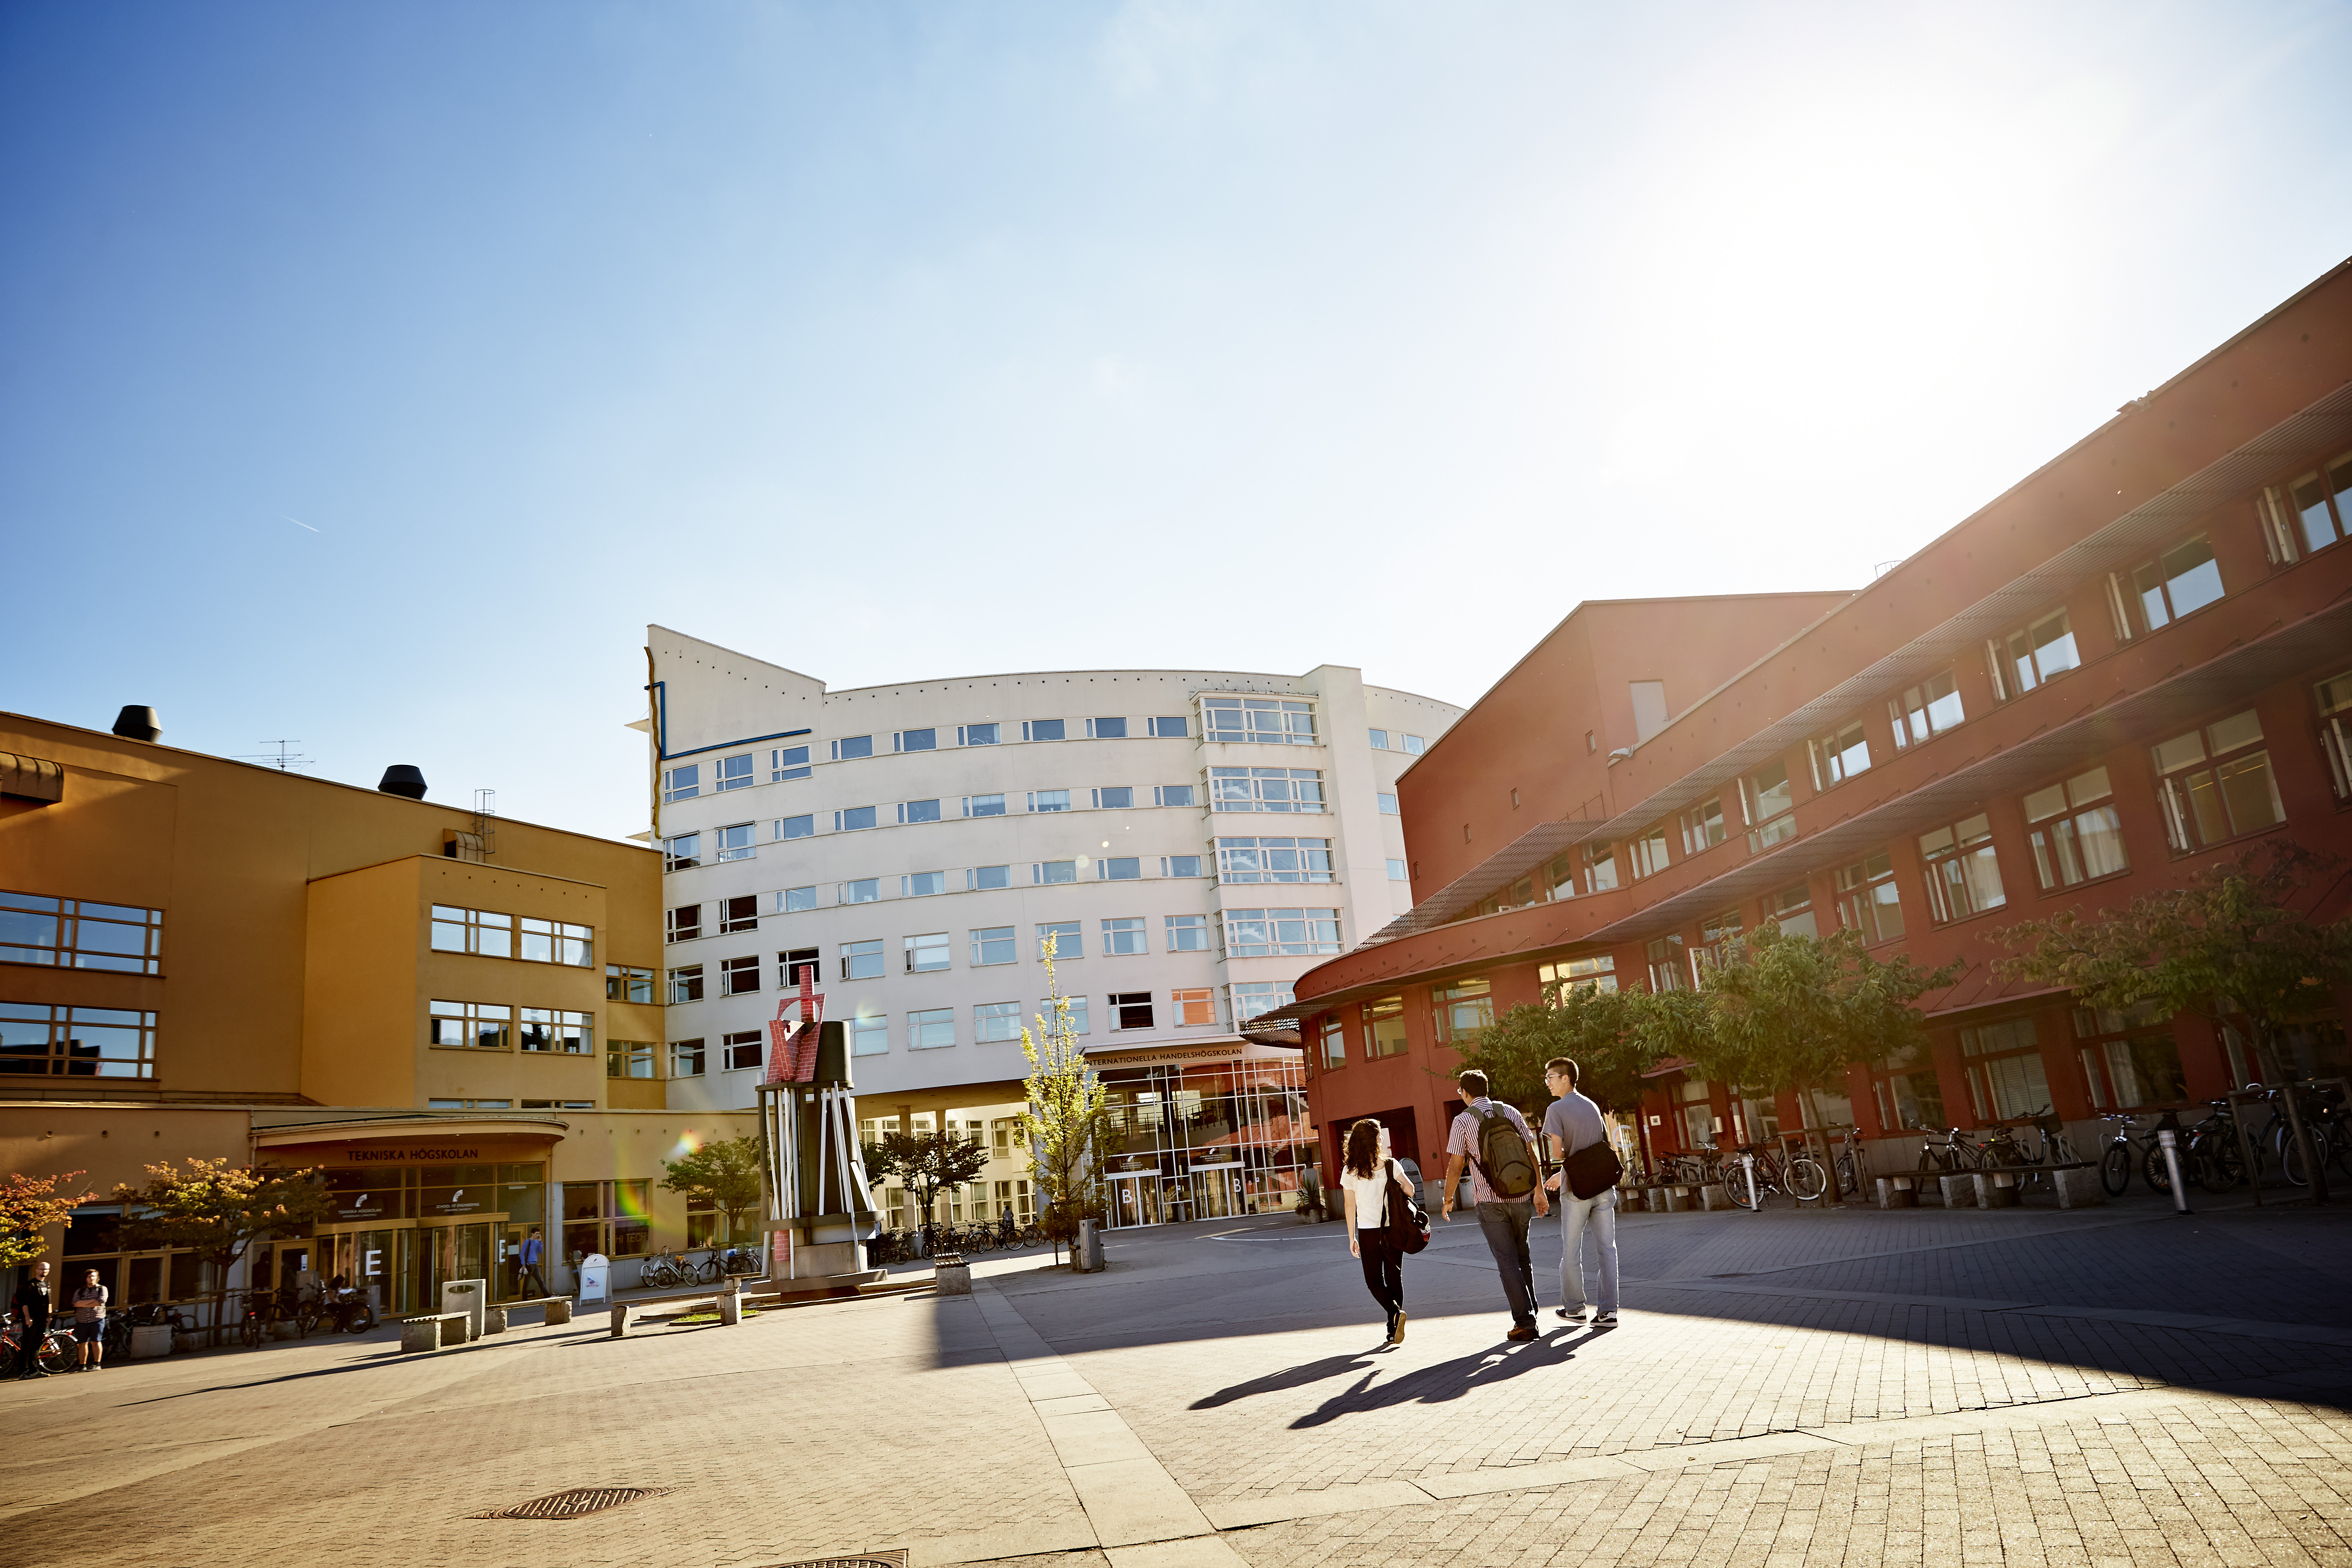 Tre studenter på campus en solig dag